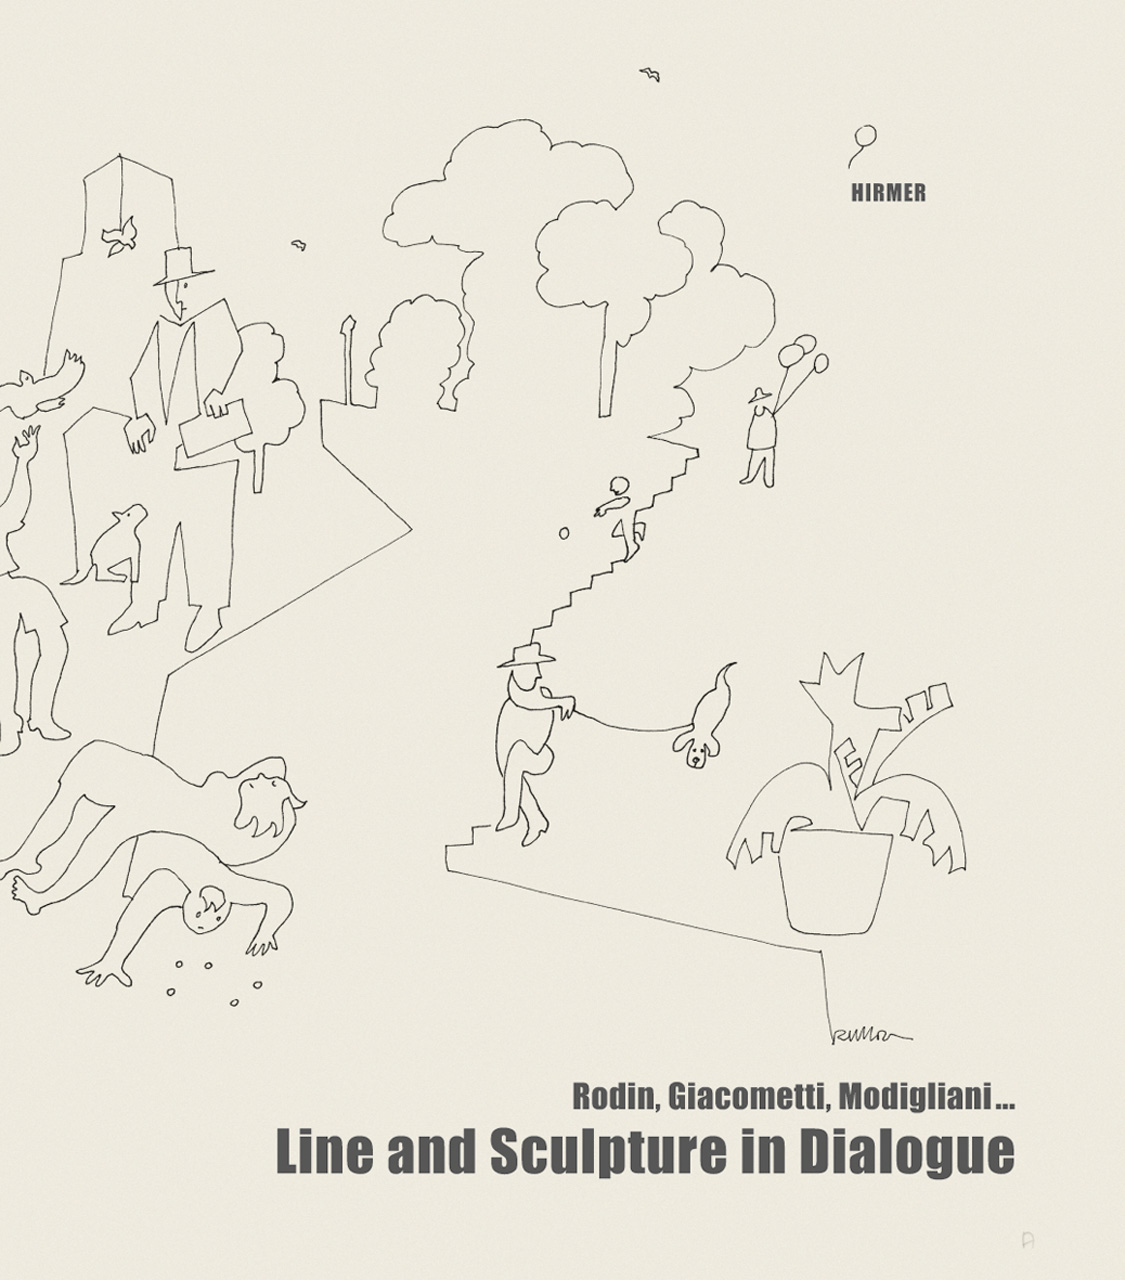 Line and Sculpture in Dialogue: Rodin, Giacometti, Modigliani...